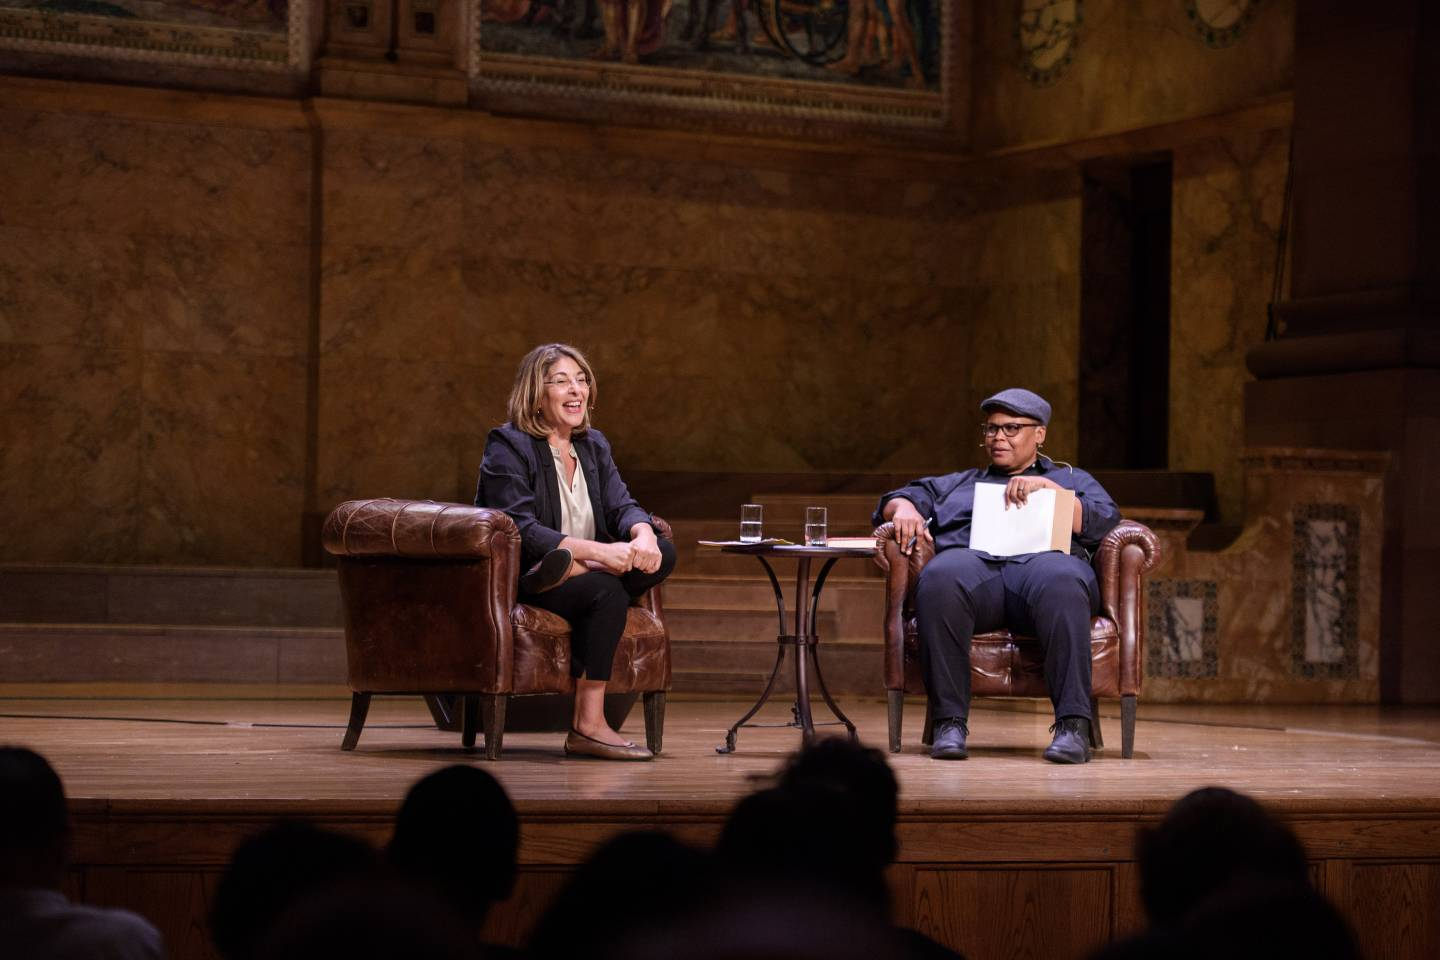 Author Naomi Klein fires up discussion of climate crisis and action